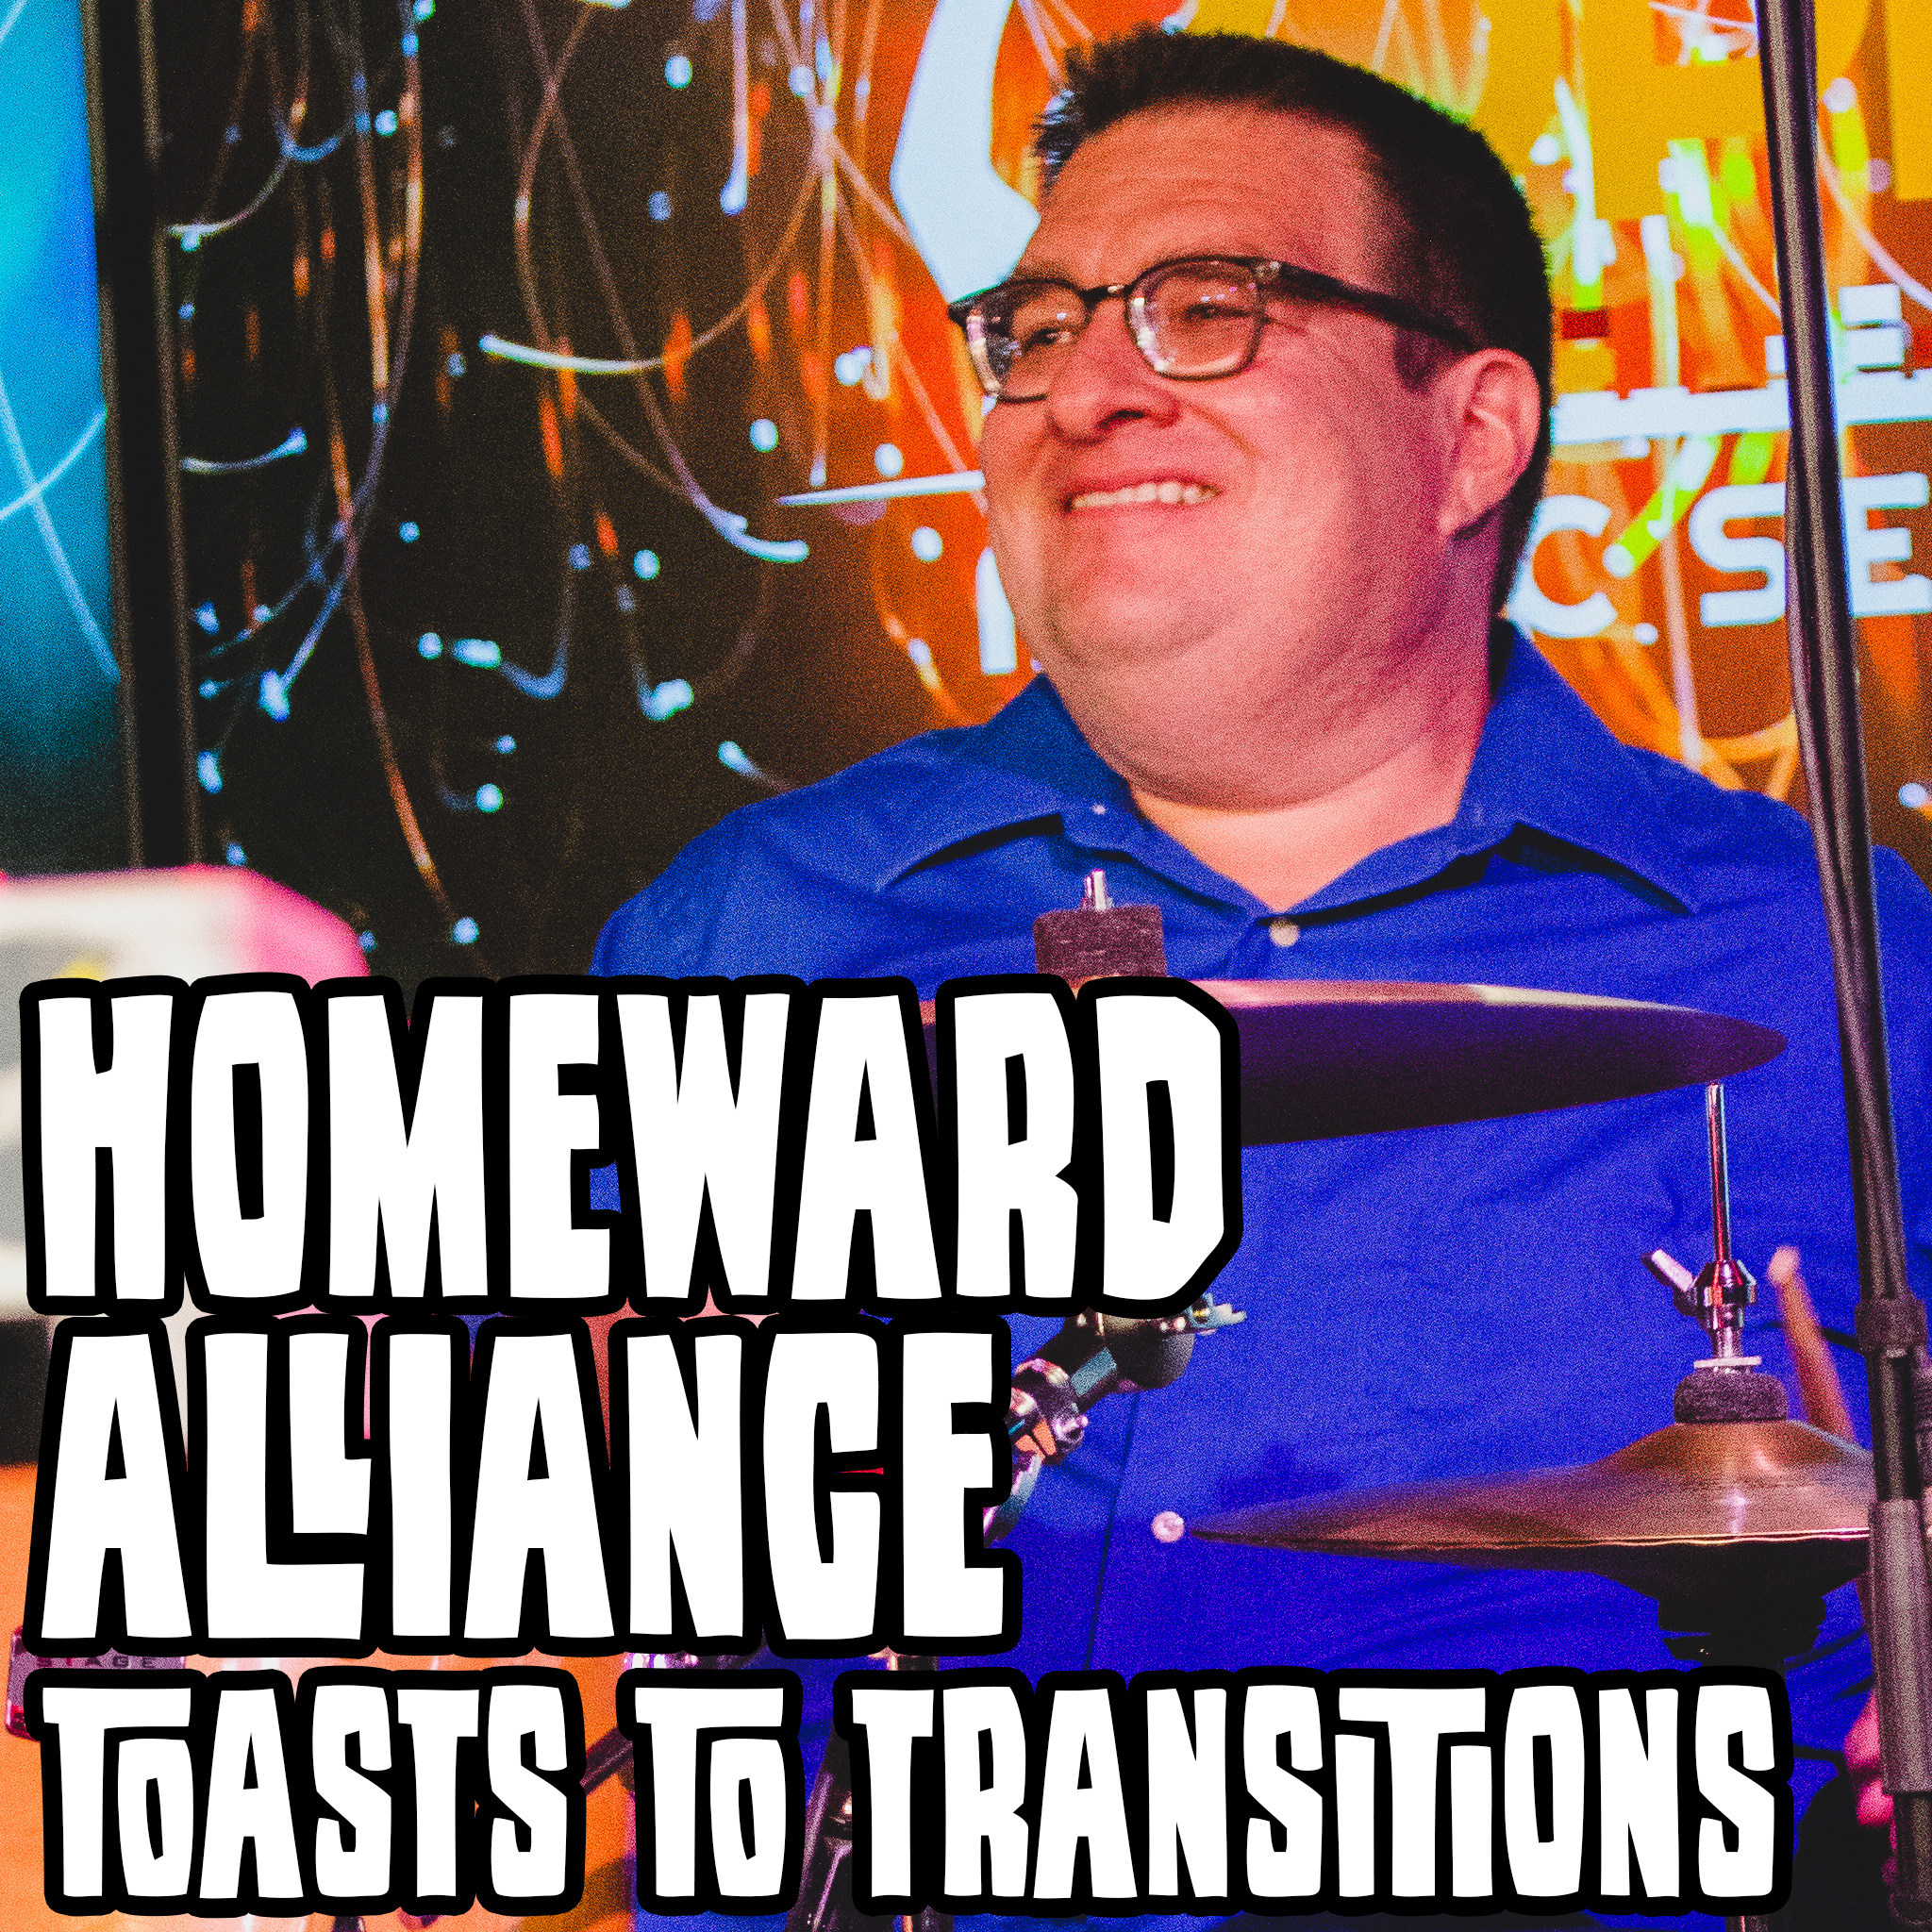 Homeward Alliance's Toast to Transitions